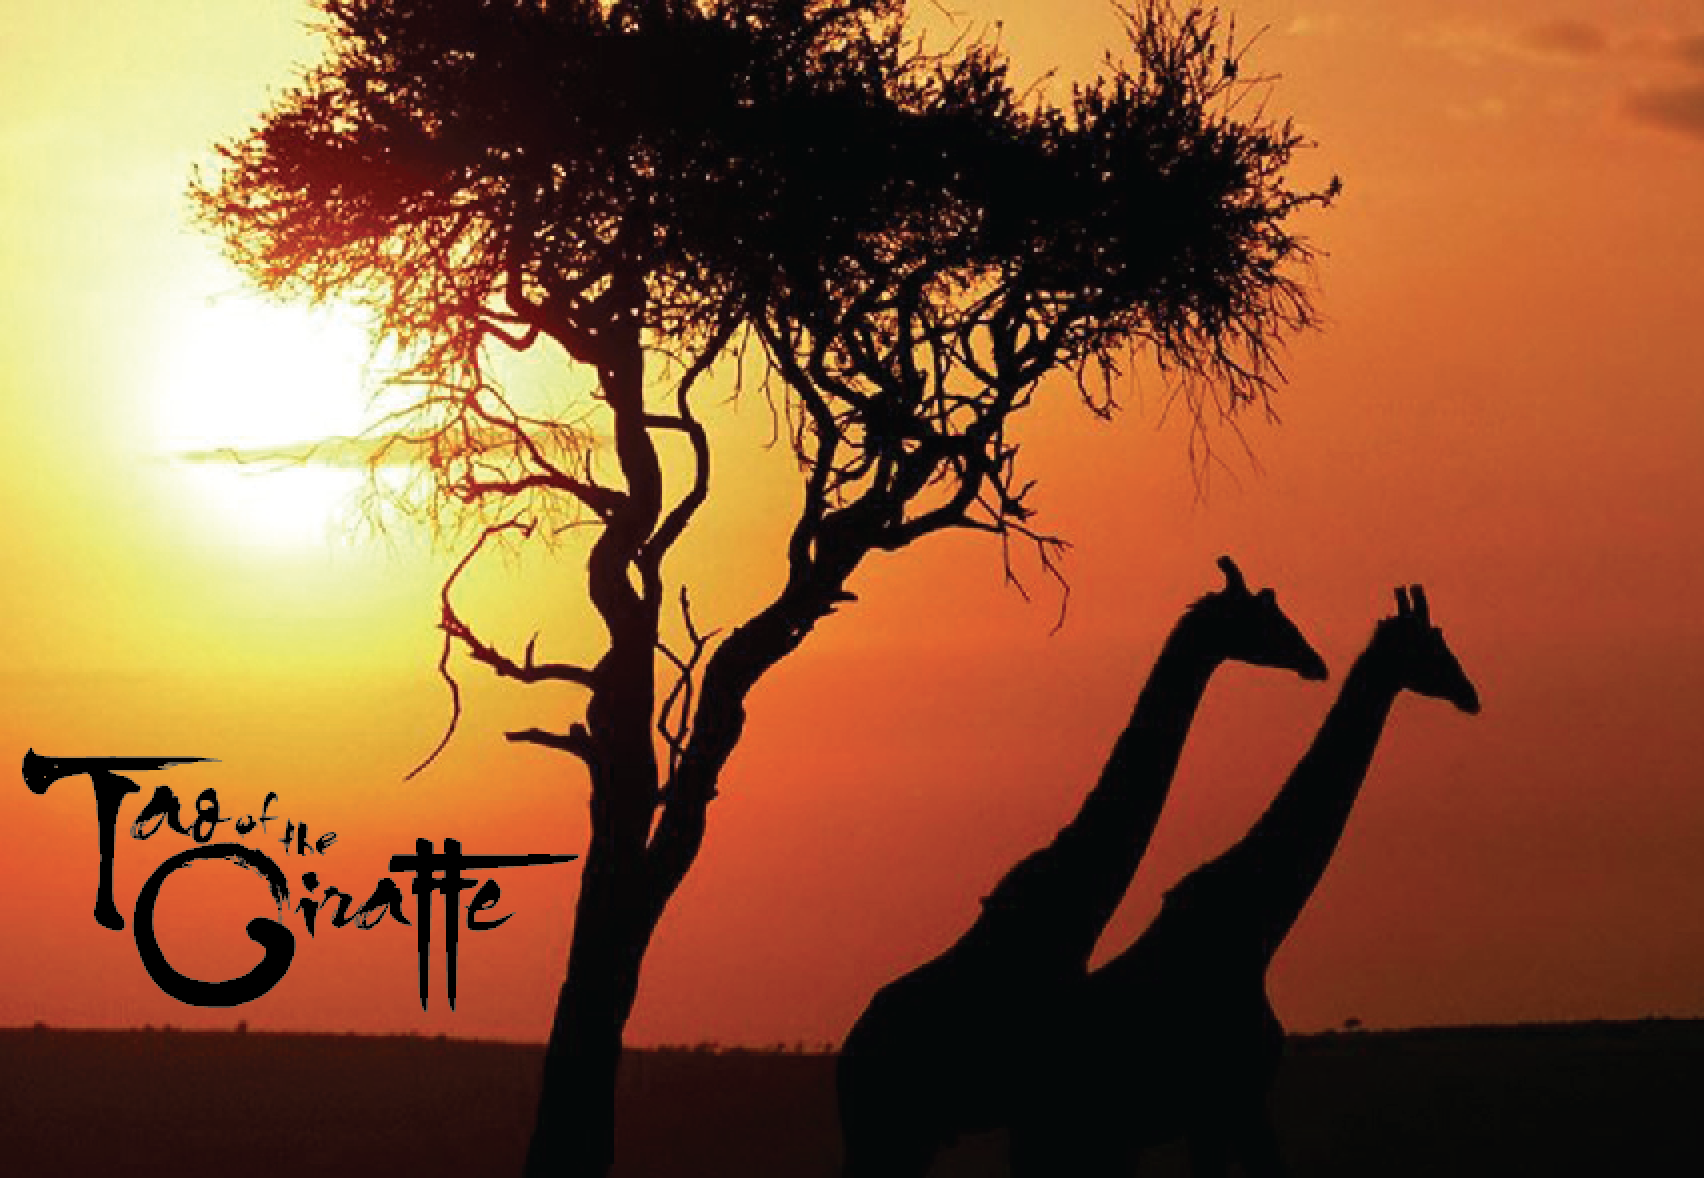 Tao of the Giraffe (sunset)